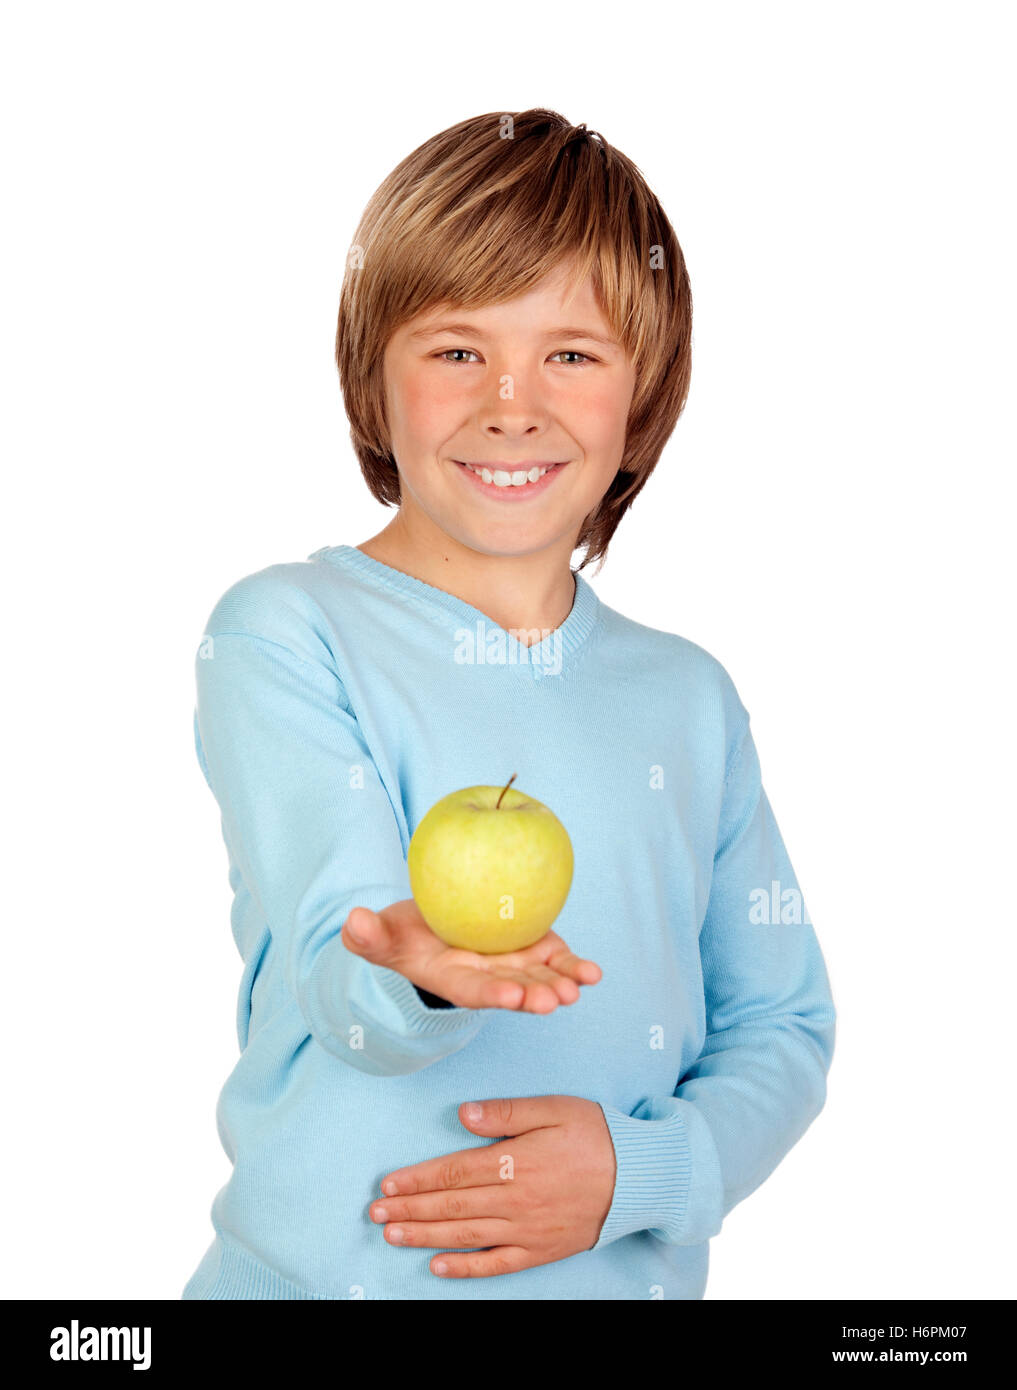 Preteen boy with a yellow apple isolated on white background - Stock Image